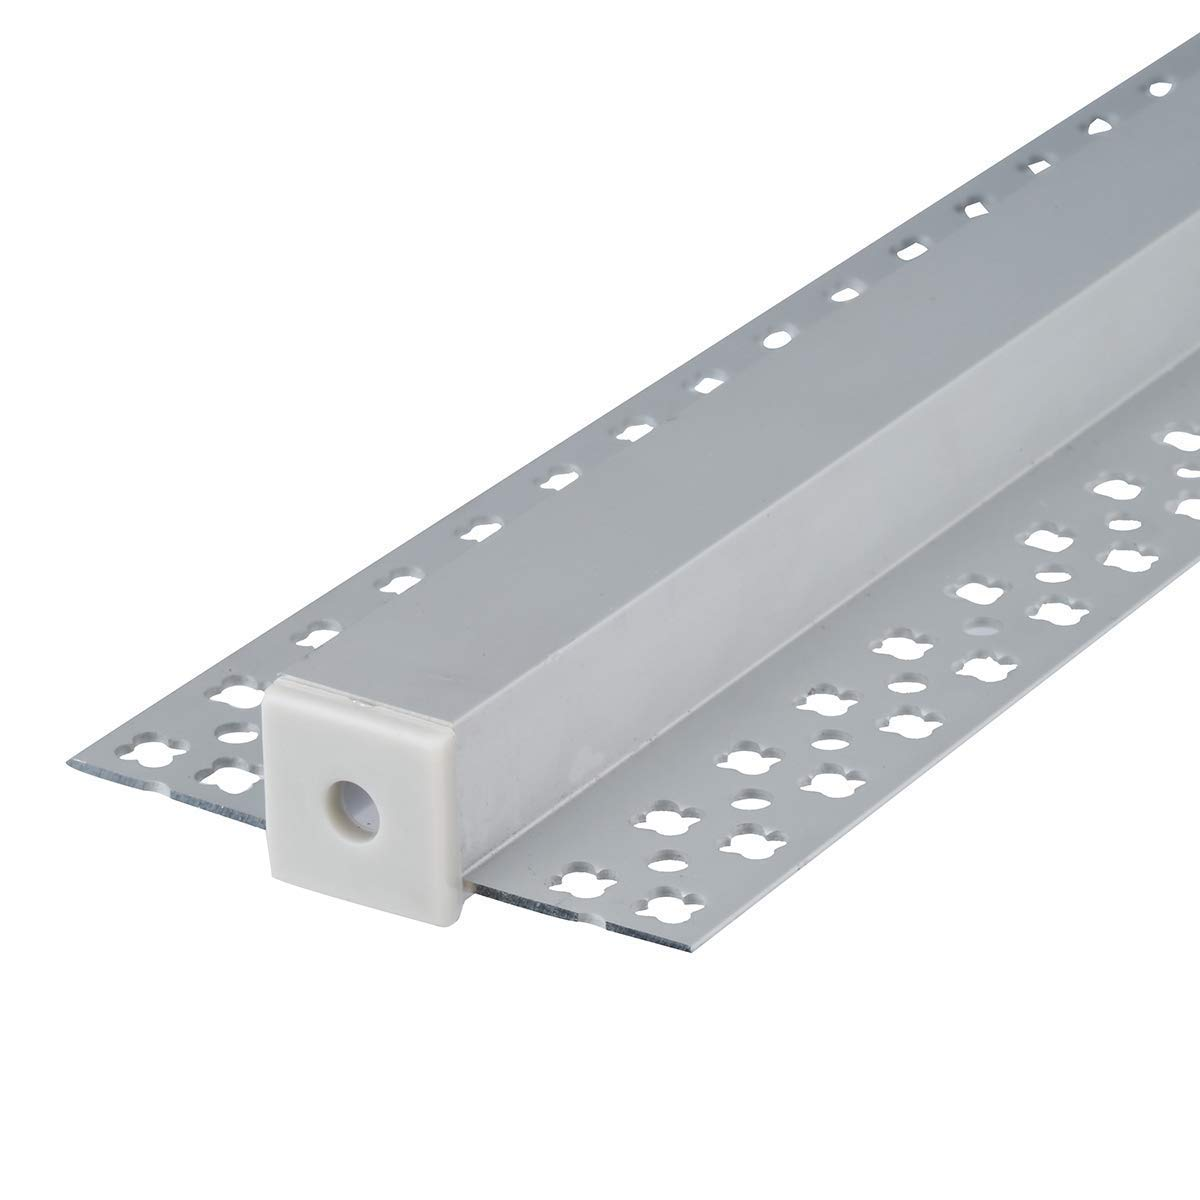 StarlandLed 5-Pack 6.6FT/2 Meter Plaster-in Recessed Slim LED Aluminum Channel with Flange for LED Strip, Aluminium LED Profile with Clip-in Diffuser and End Caps by StarlandLed (Image #5)